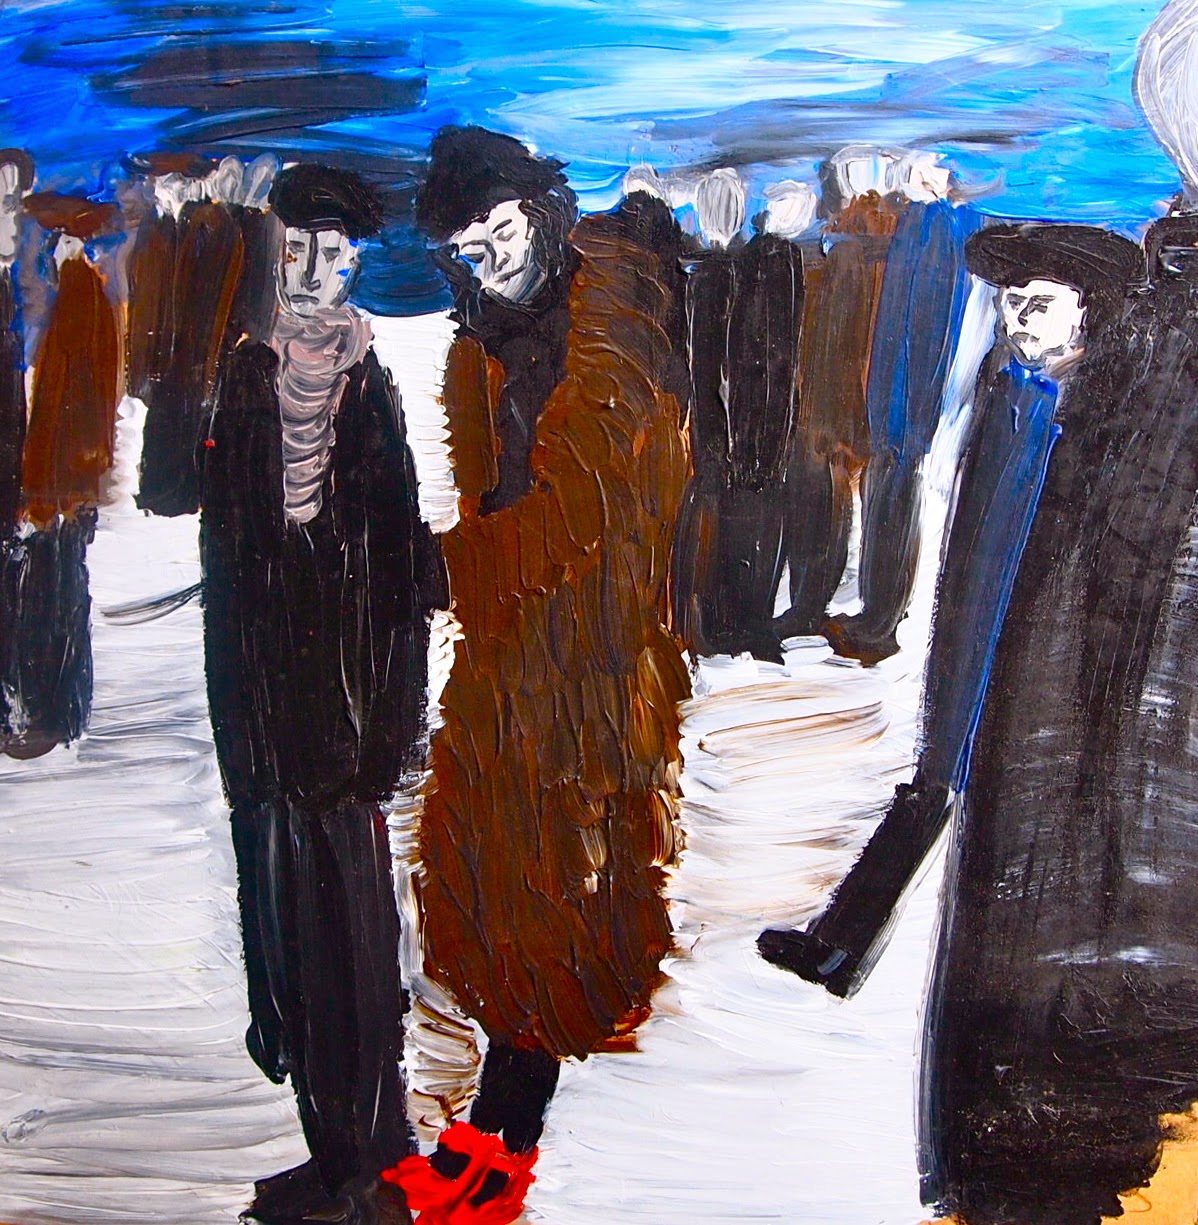 Expressionist crowd scene in snow